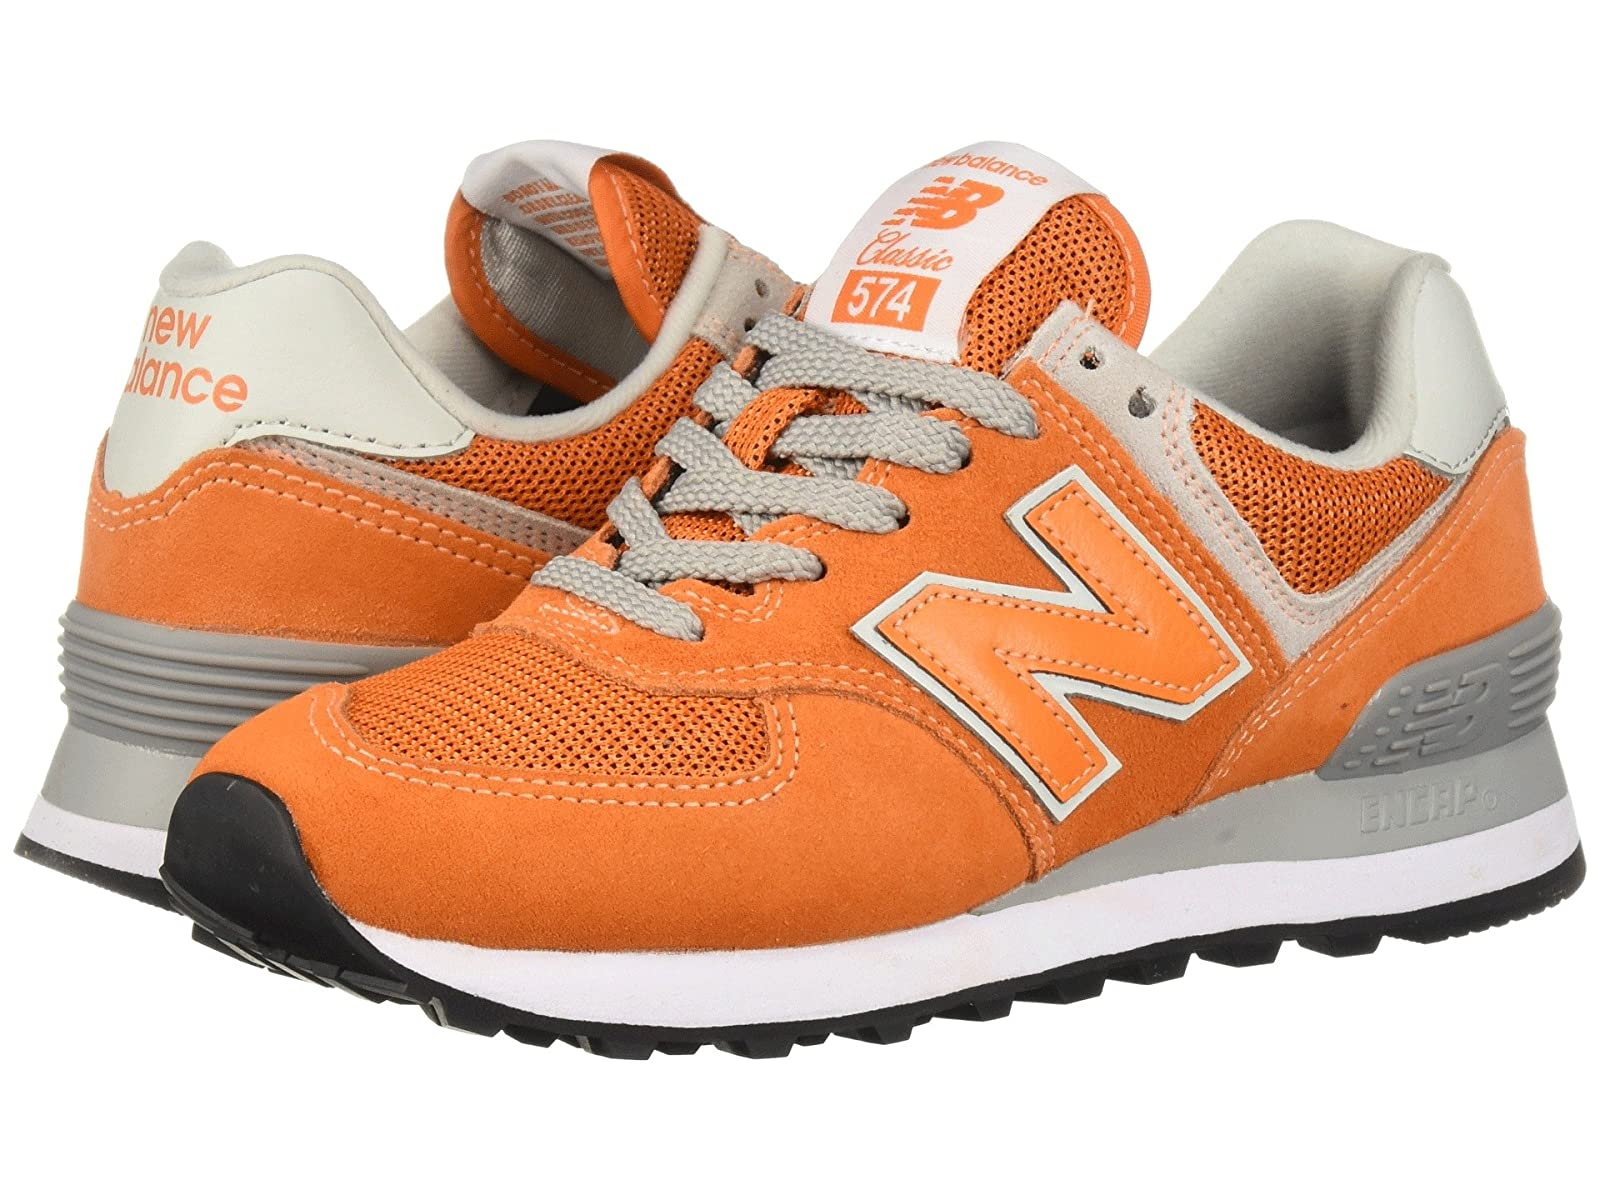 New Balance Classics ML574Cheap and distinctive eye-catching shoes